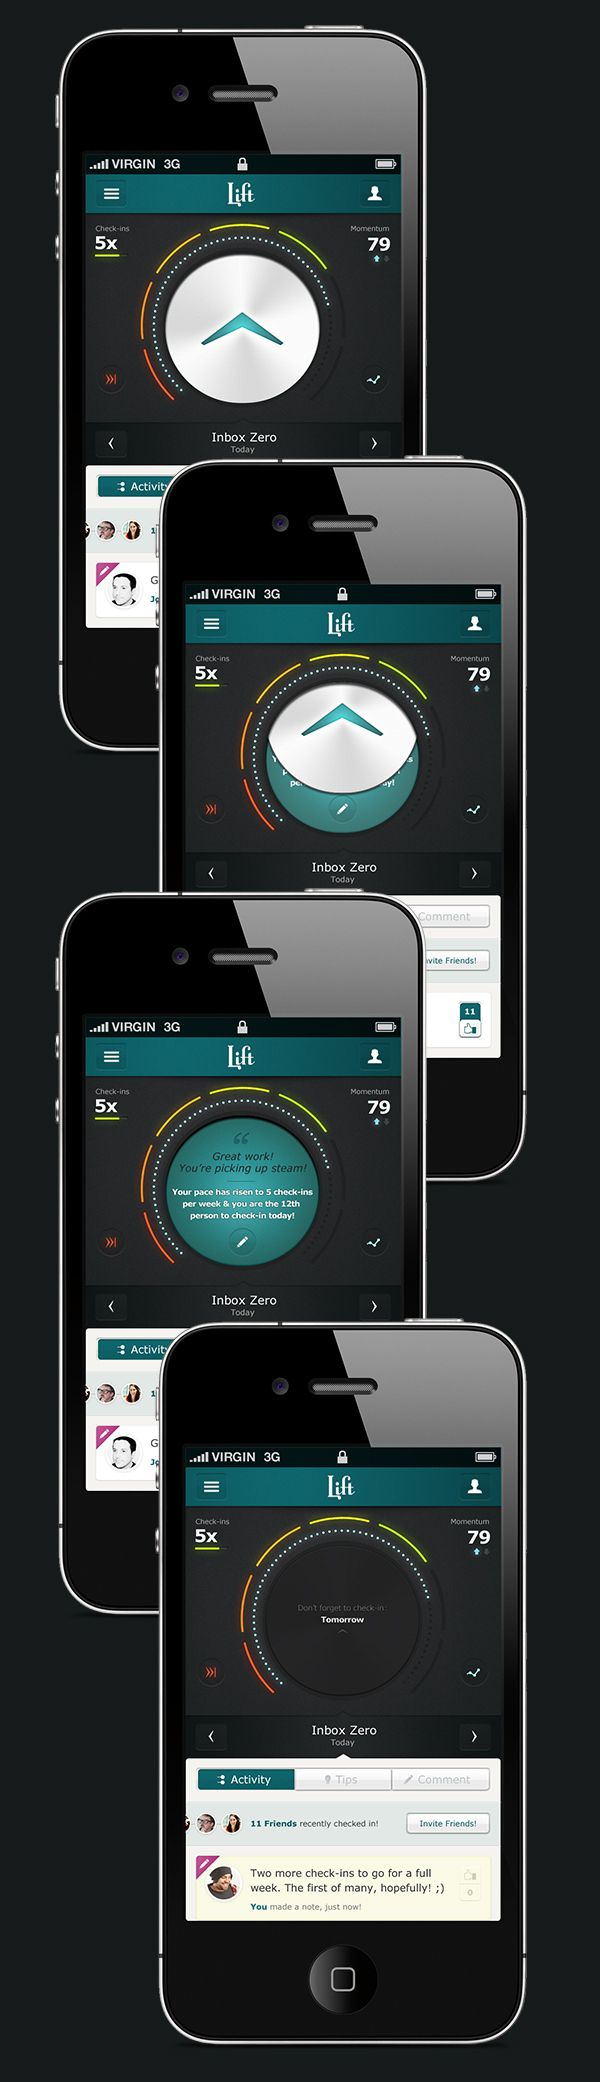 Lift: Early Concepts by Leigh Taylor, via Behance